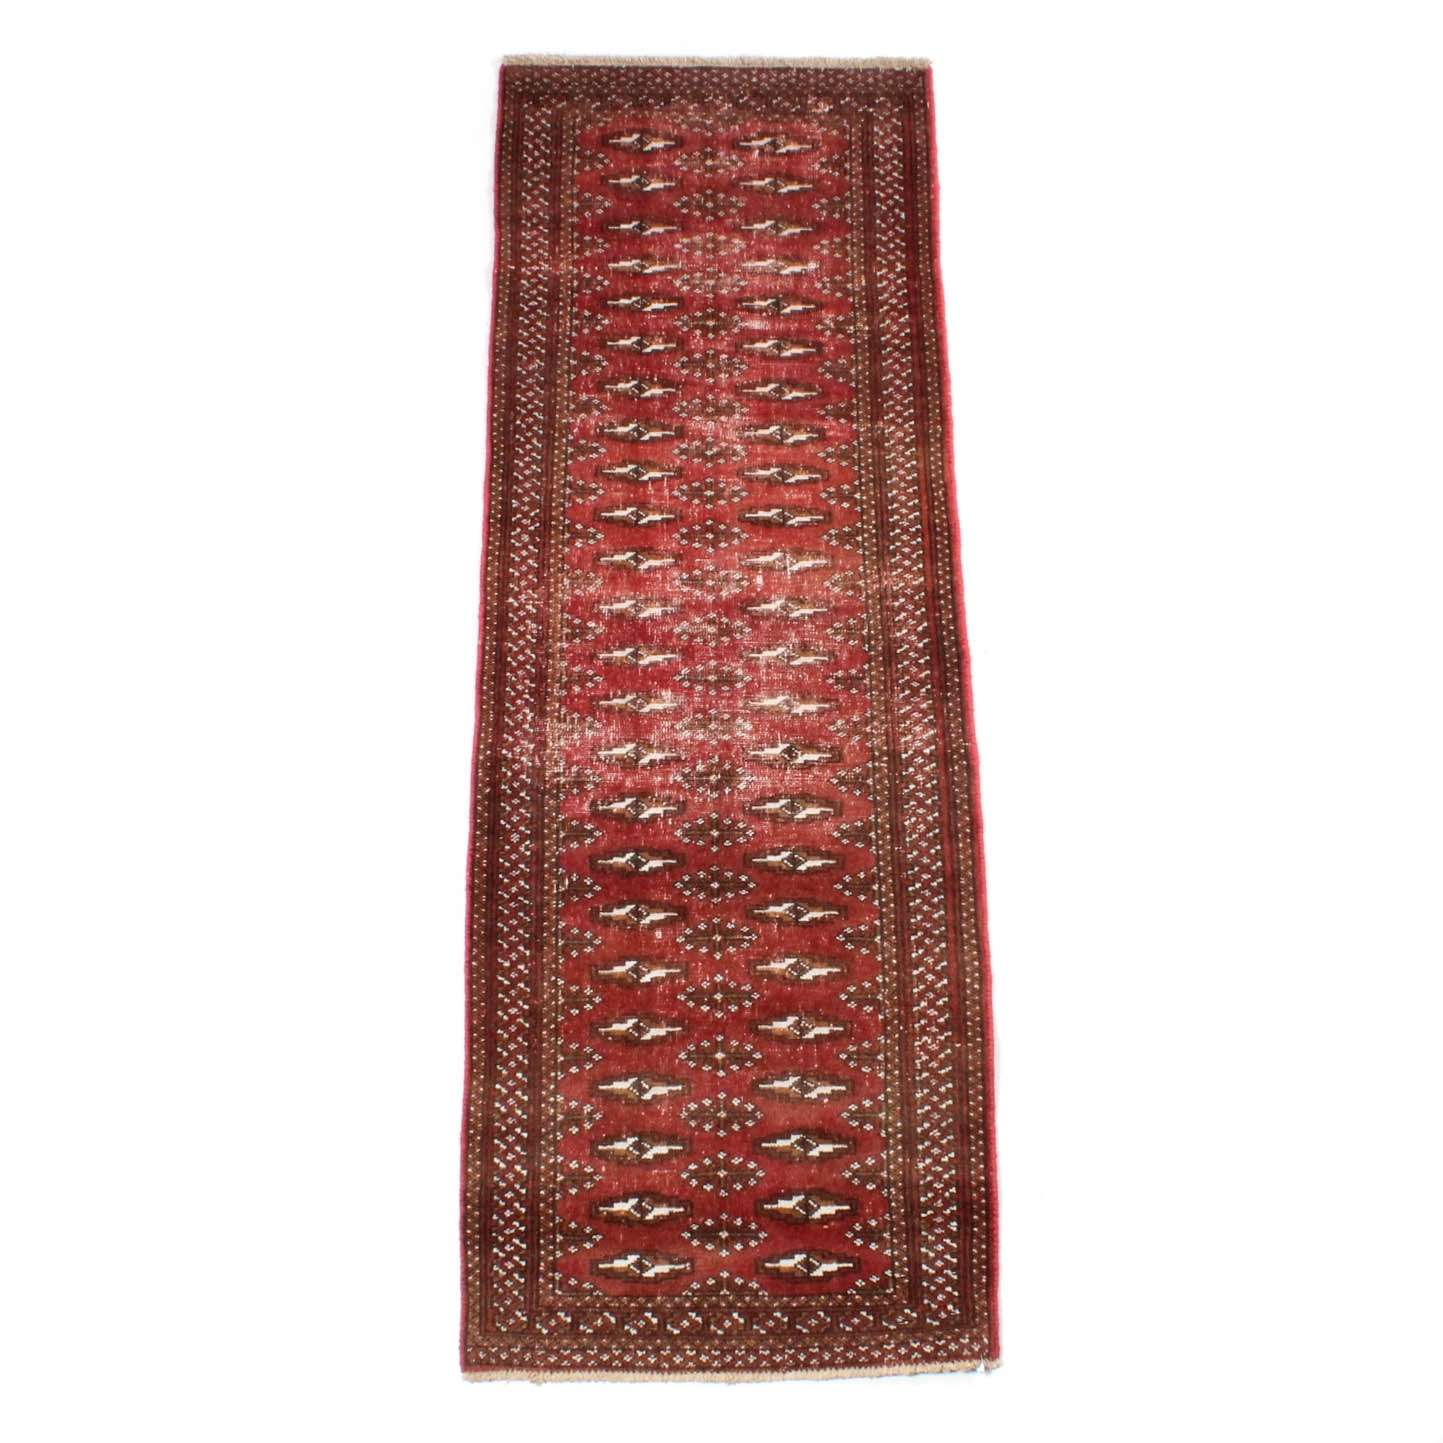 6' x 2' Vintage Hand-Knotted Persian Turkmen Rug Runner